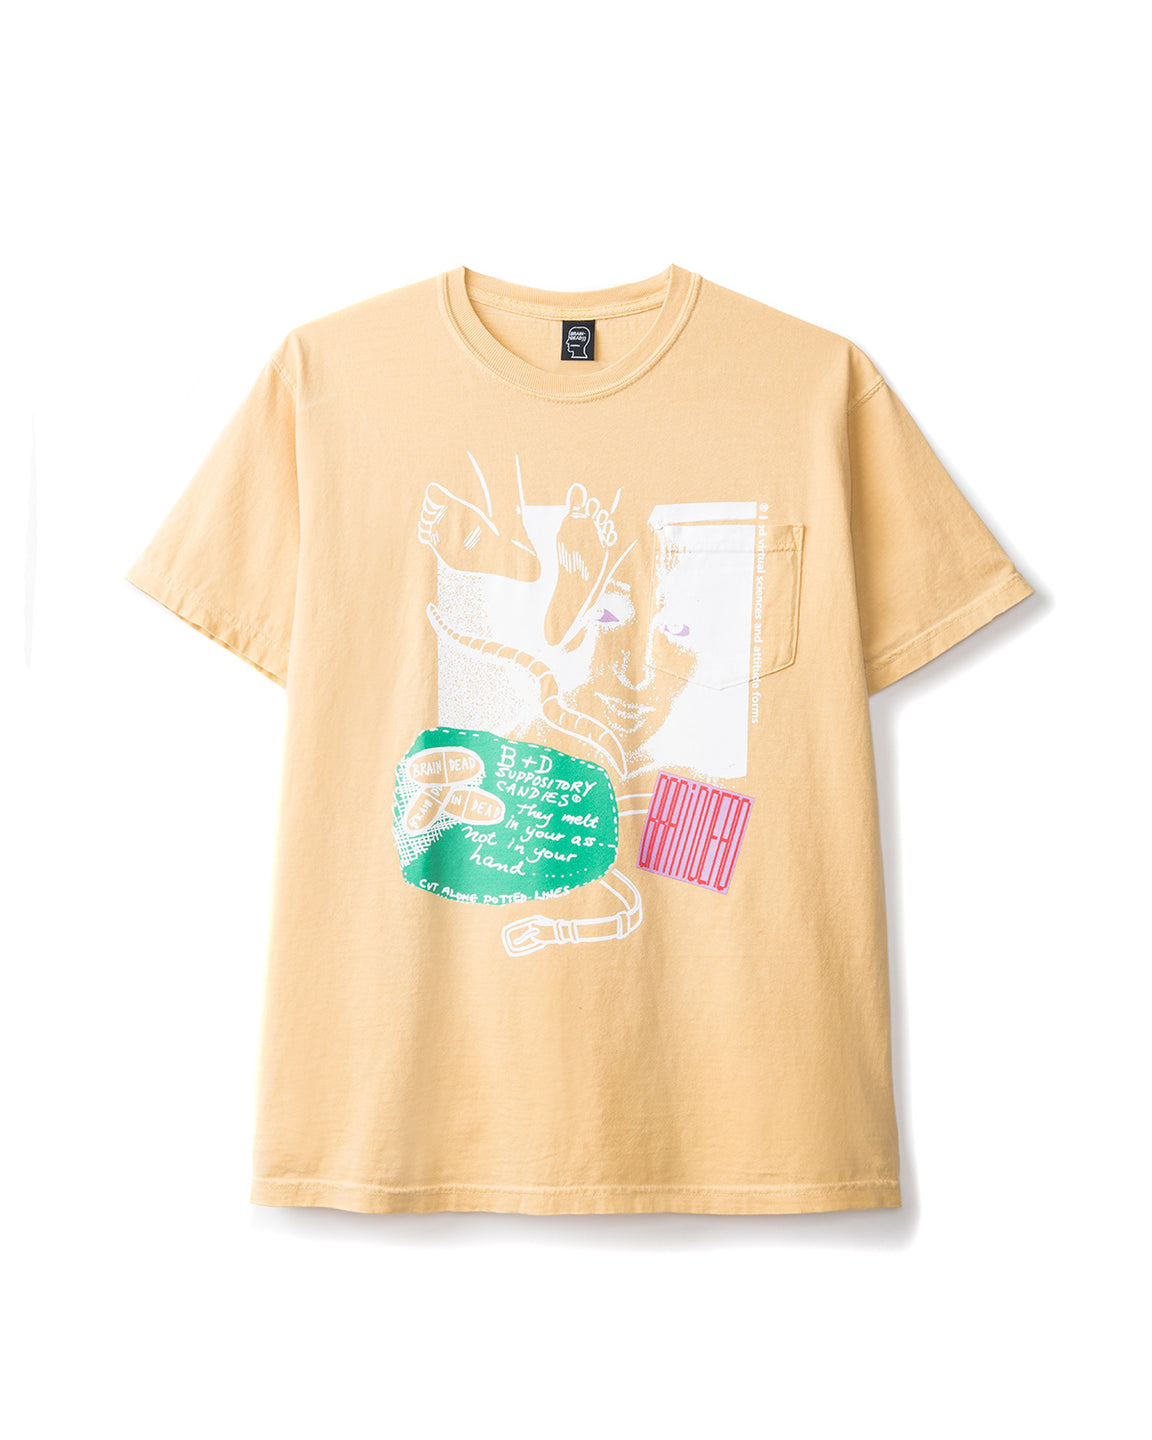 Braindead - Medication Tee - Yellow - front